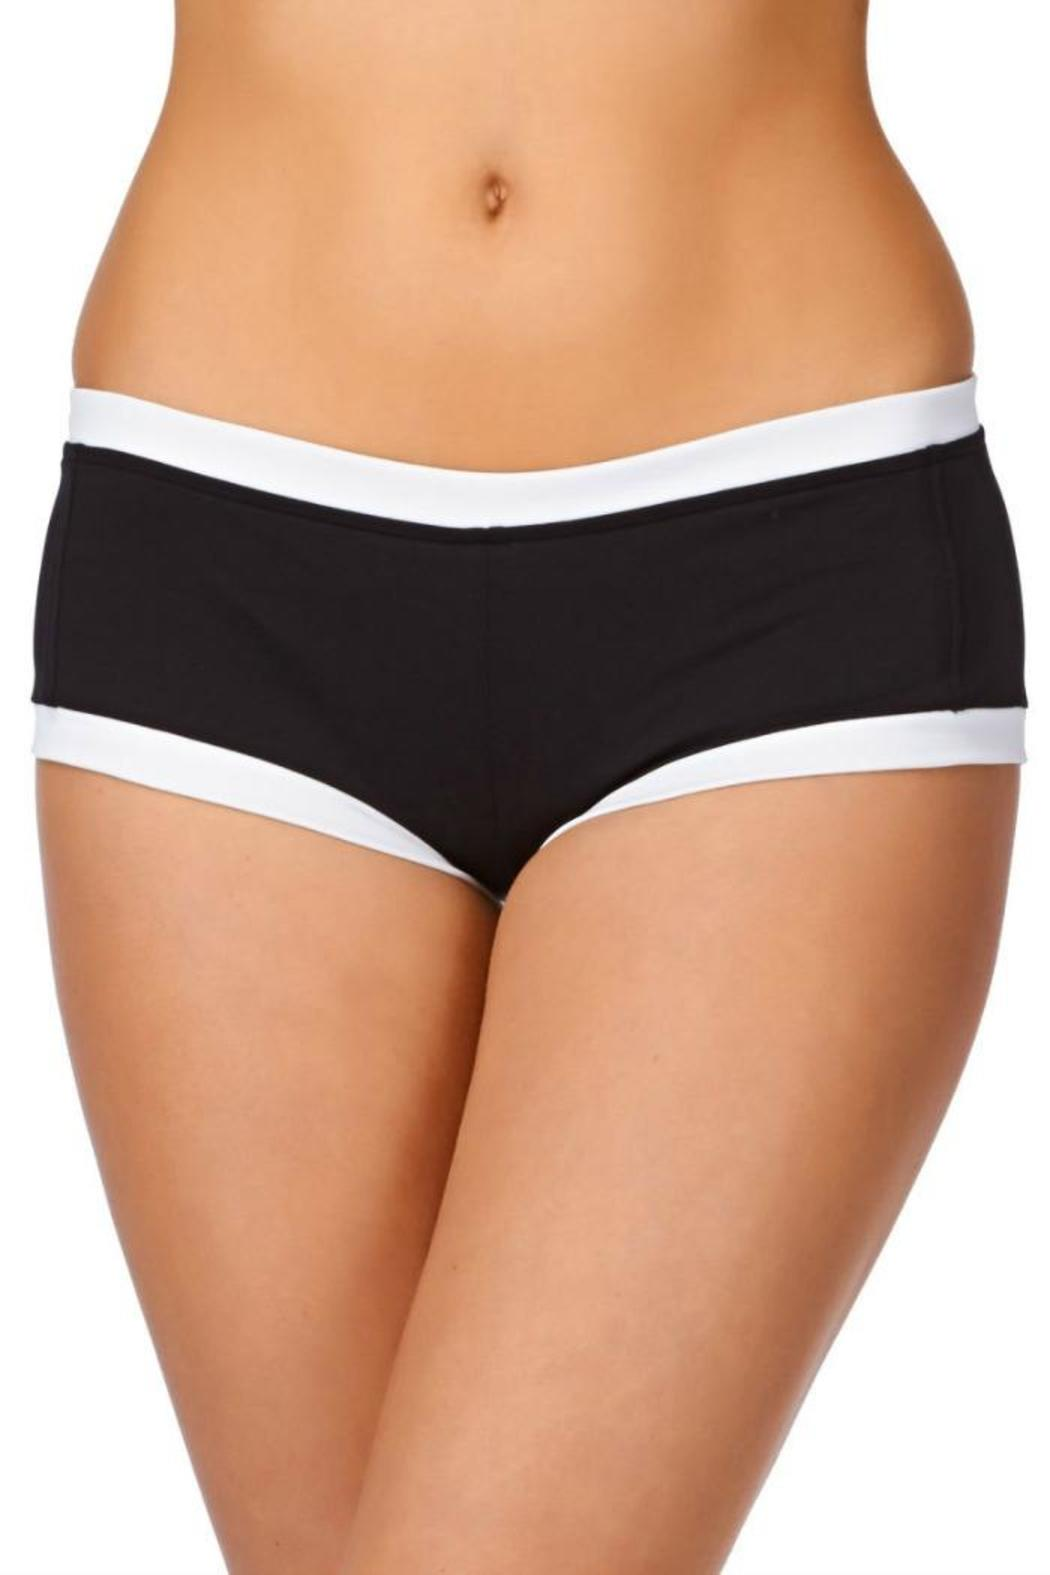 b8cfc7d21e902 SEAFOLLY Boyleg Swim Bottoms from Massachusetts by Bloom Lingerie ...